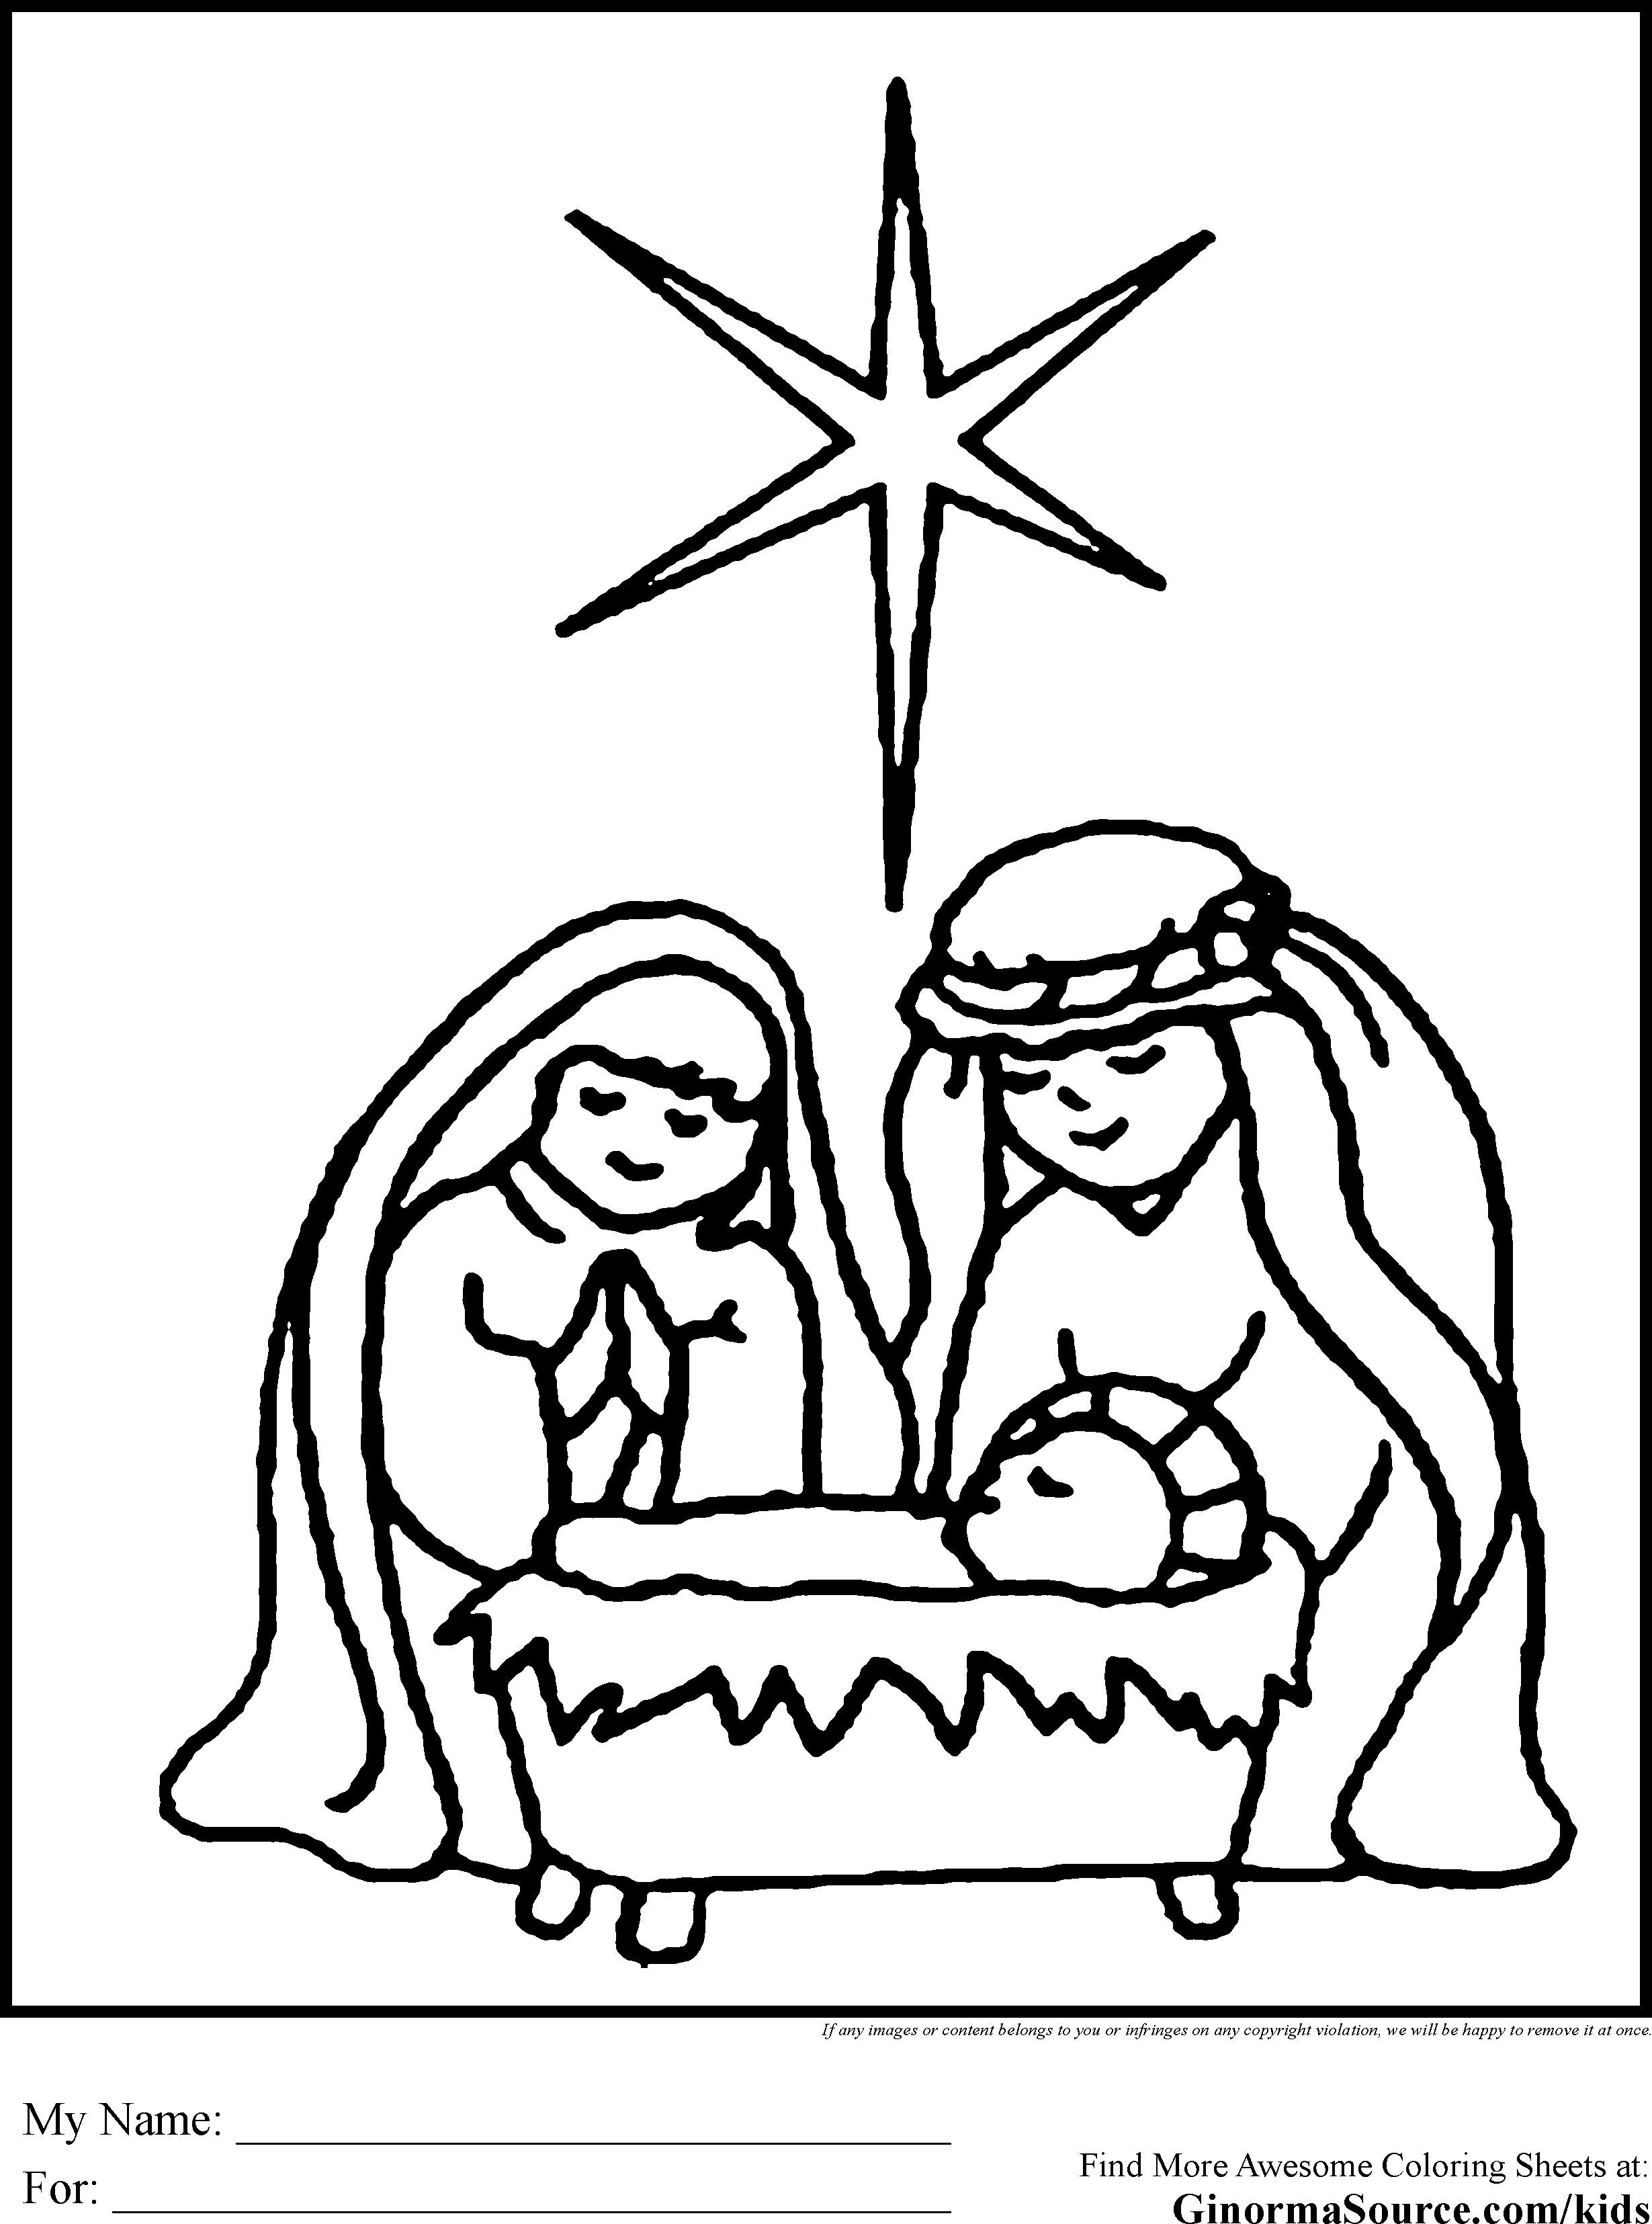 Jesus Christmas Coloring Pages Coloring Pages Of Nativity Characters Unique Nativity Scene Coloring